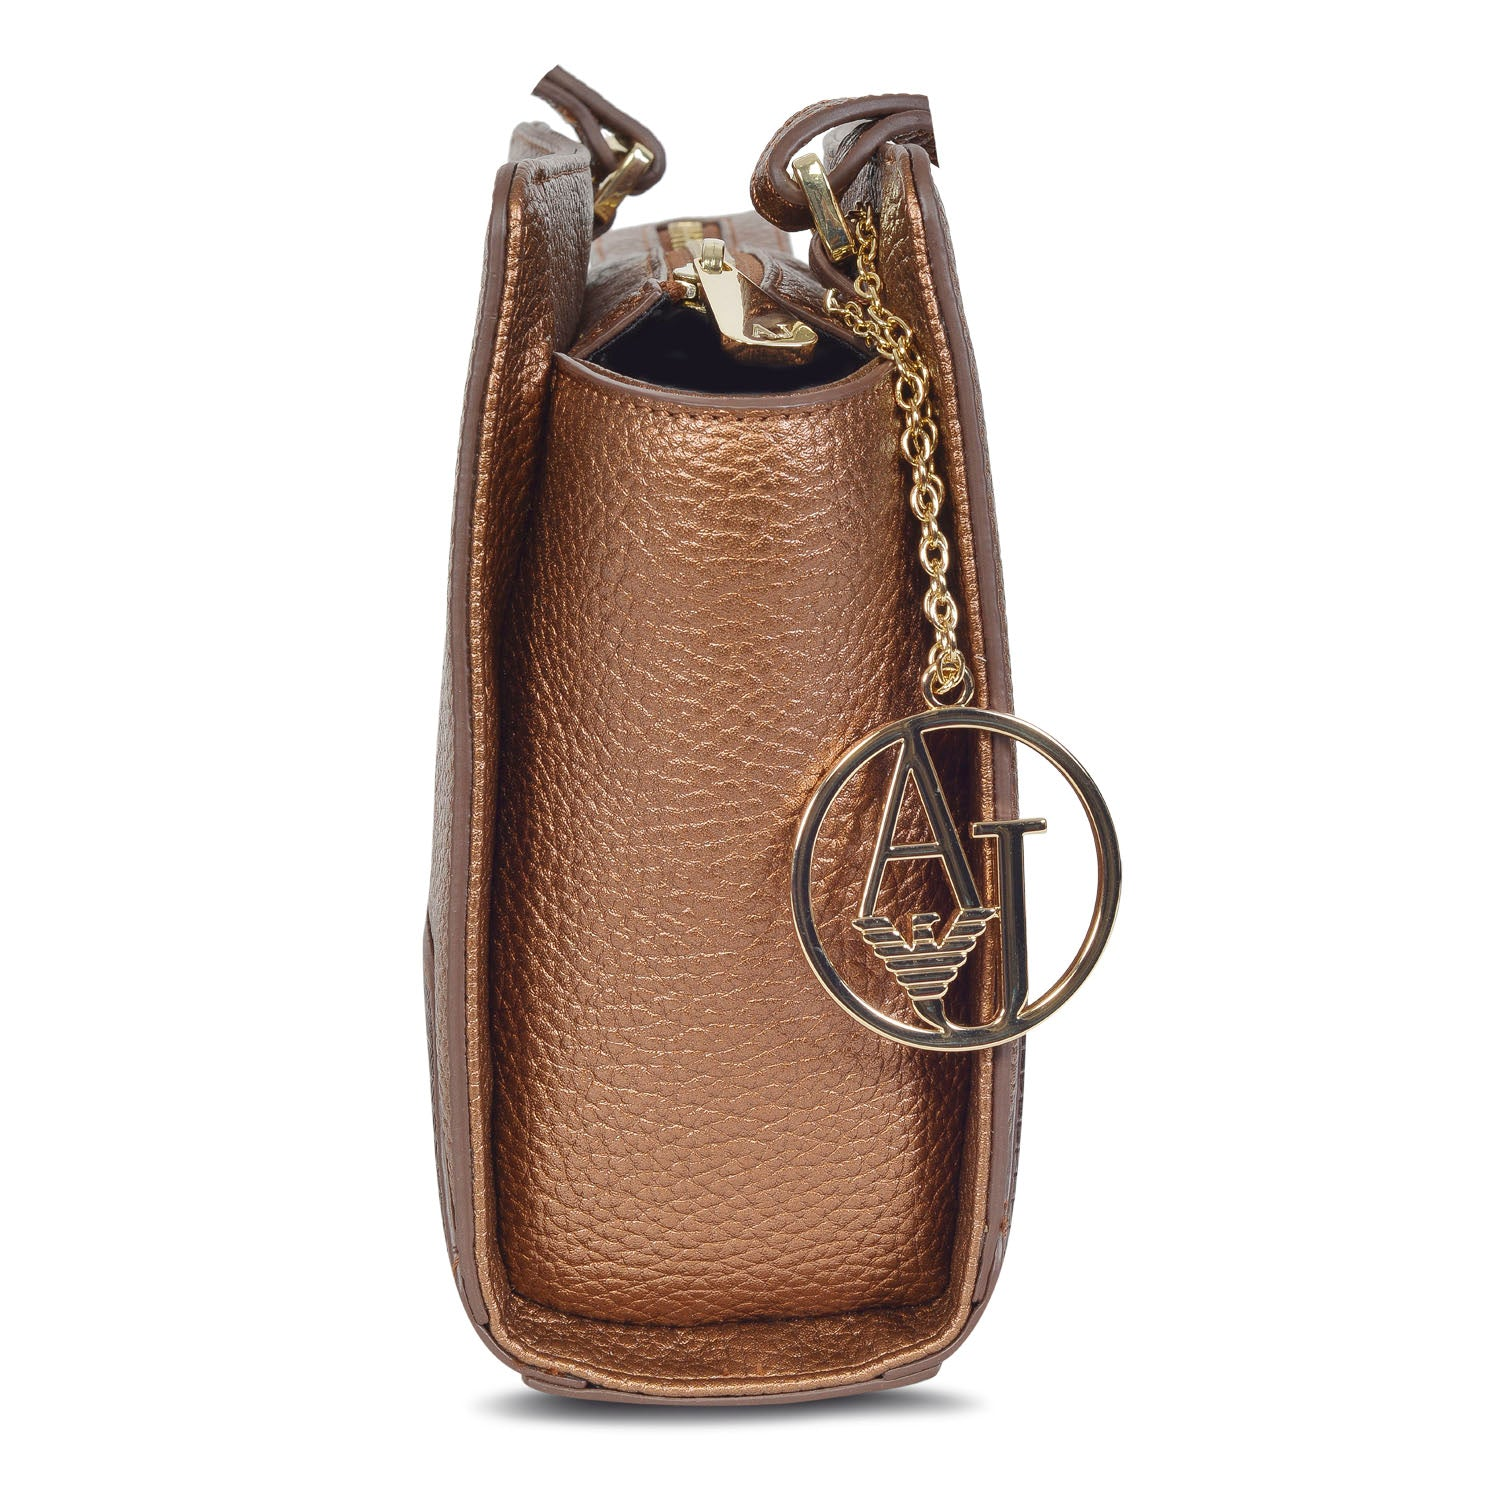 17a0086795 ARMANI DESIGNER WOMEN'S LEATHER CROSSBODY BAG with AJ charm